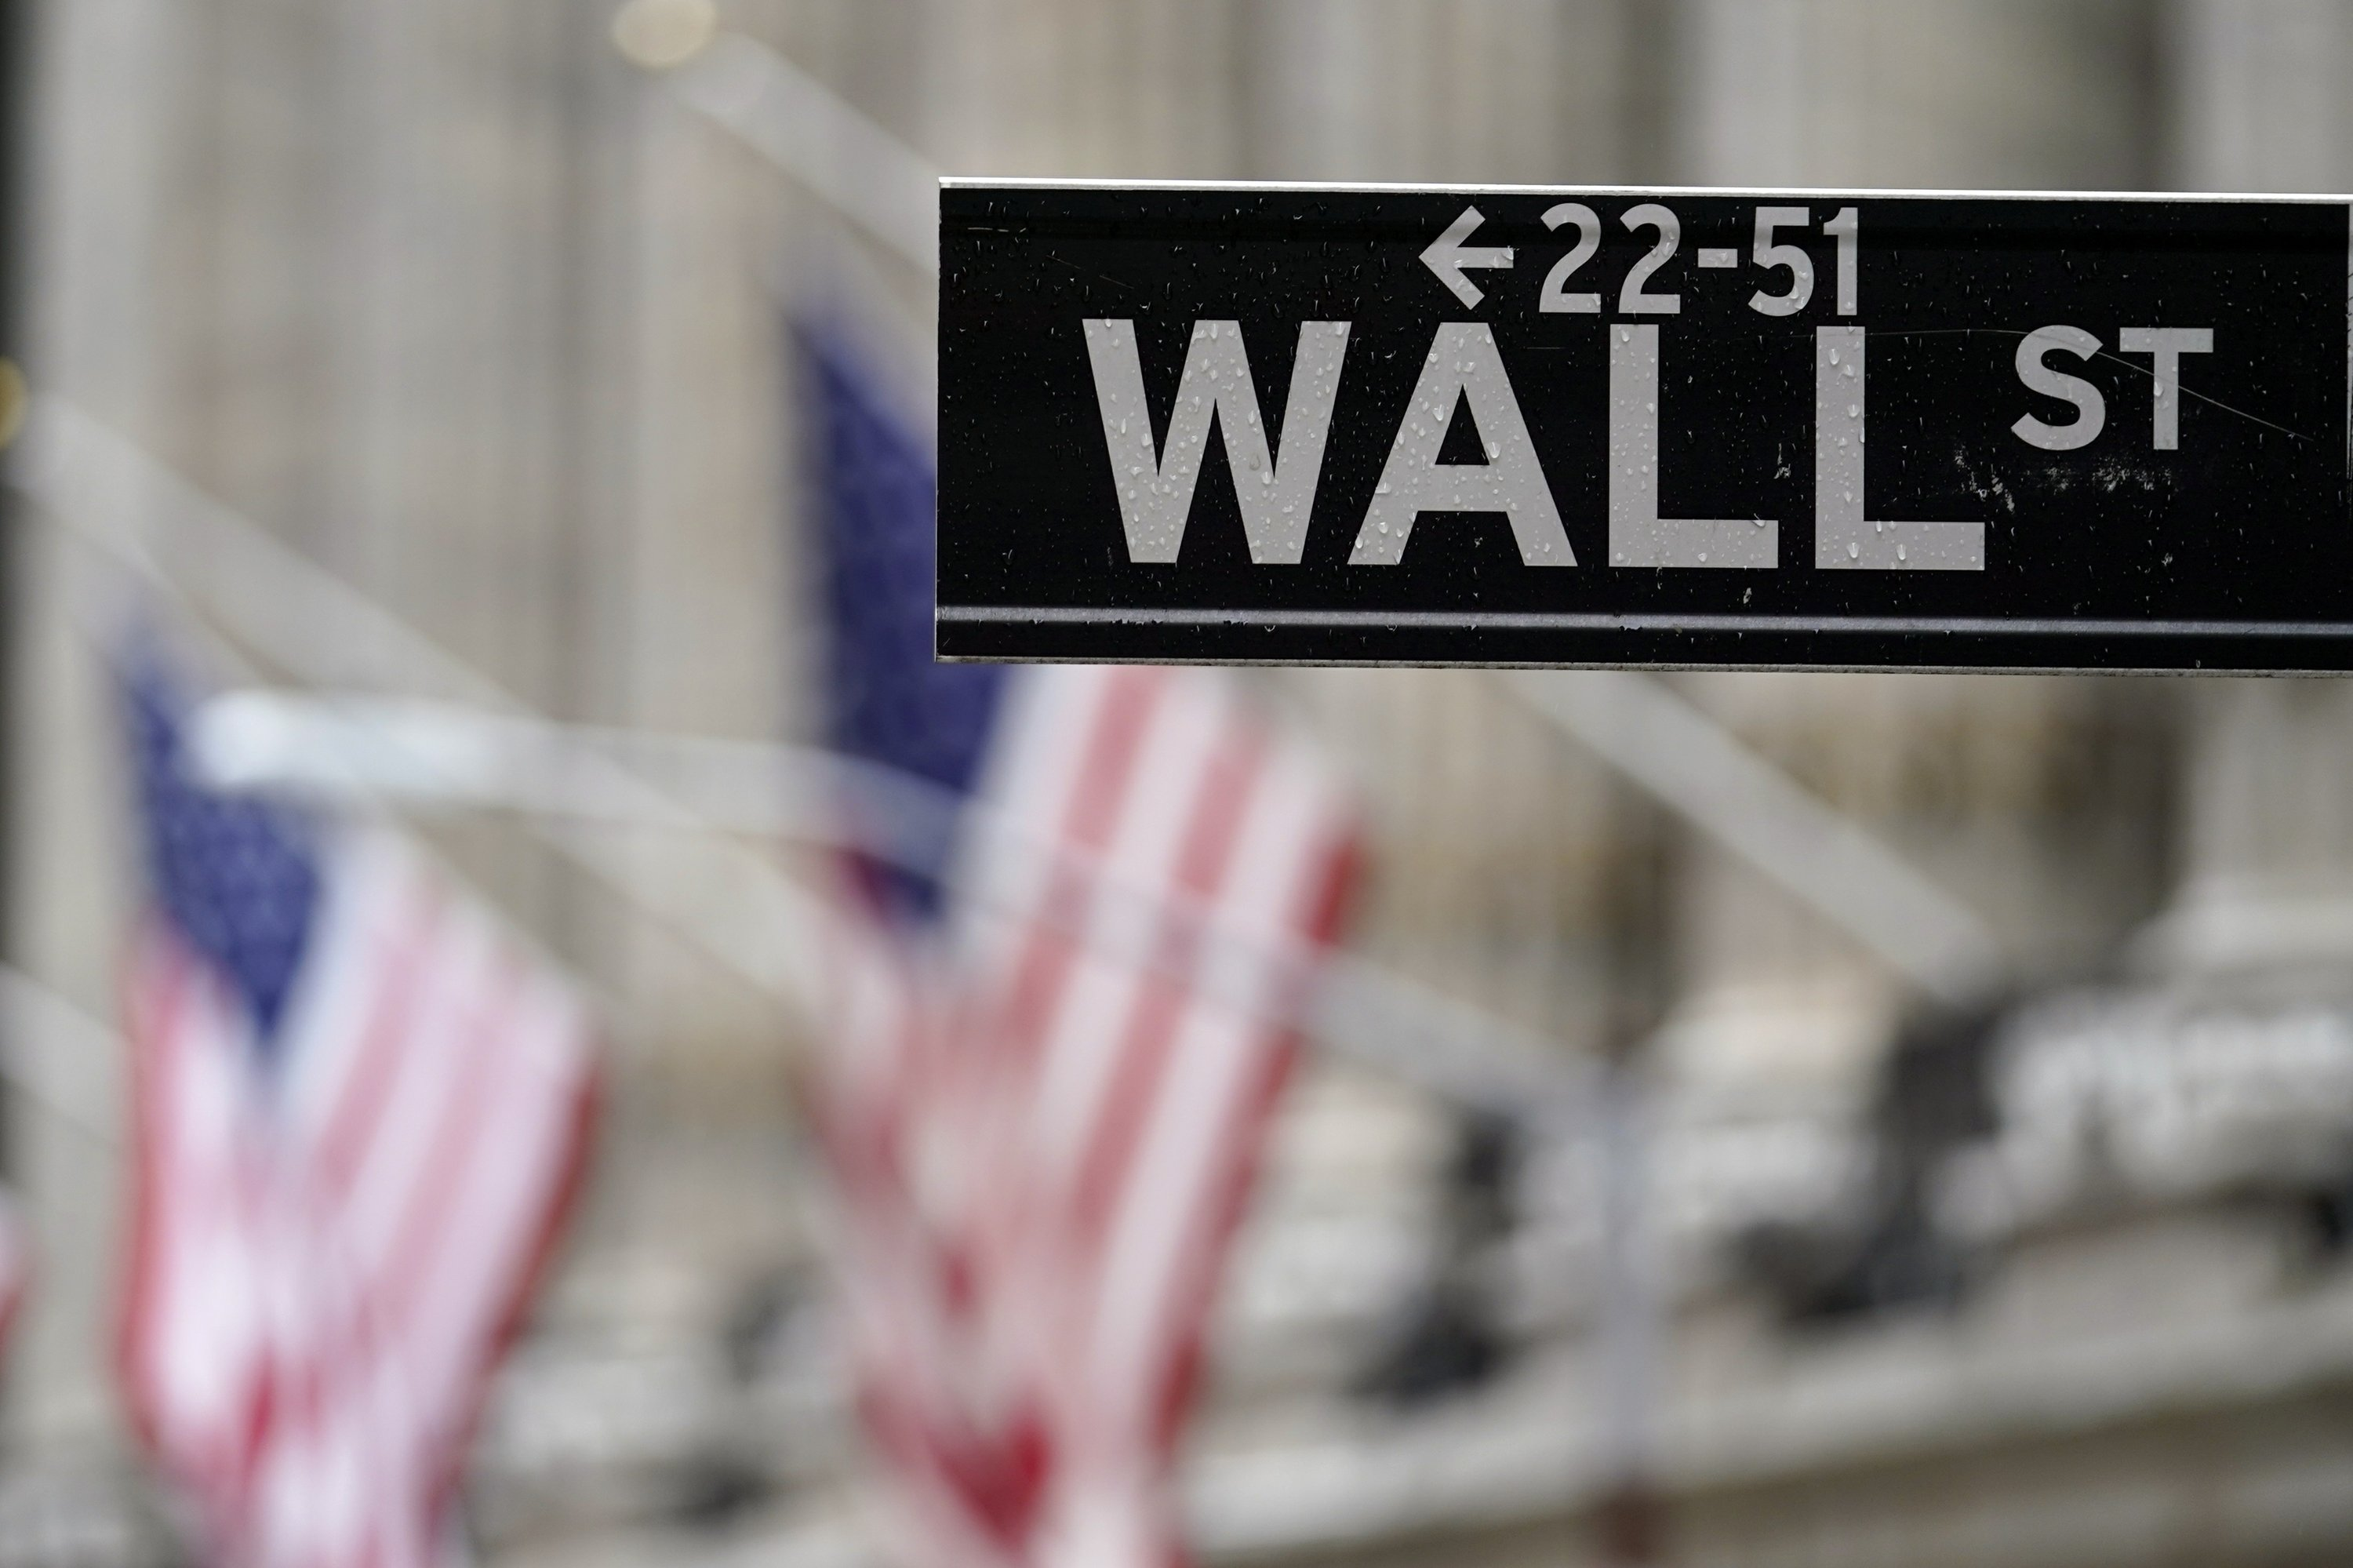 EXPLAINER: Why rising rates are unsettling Wall Street